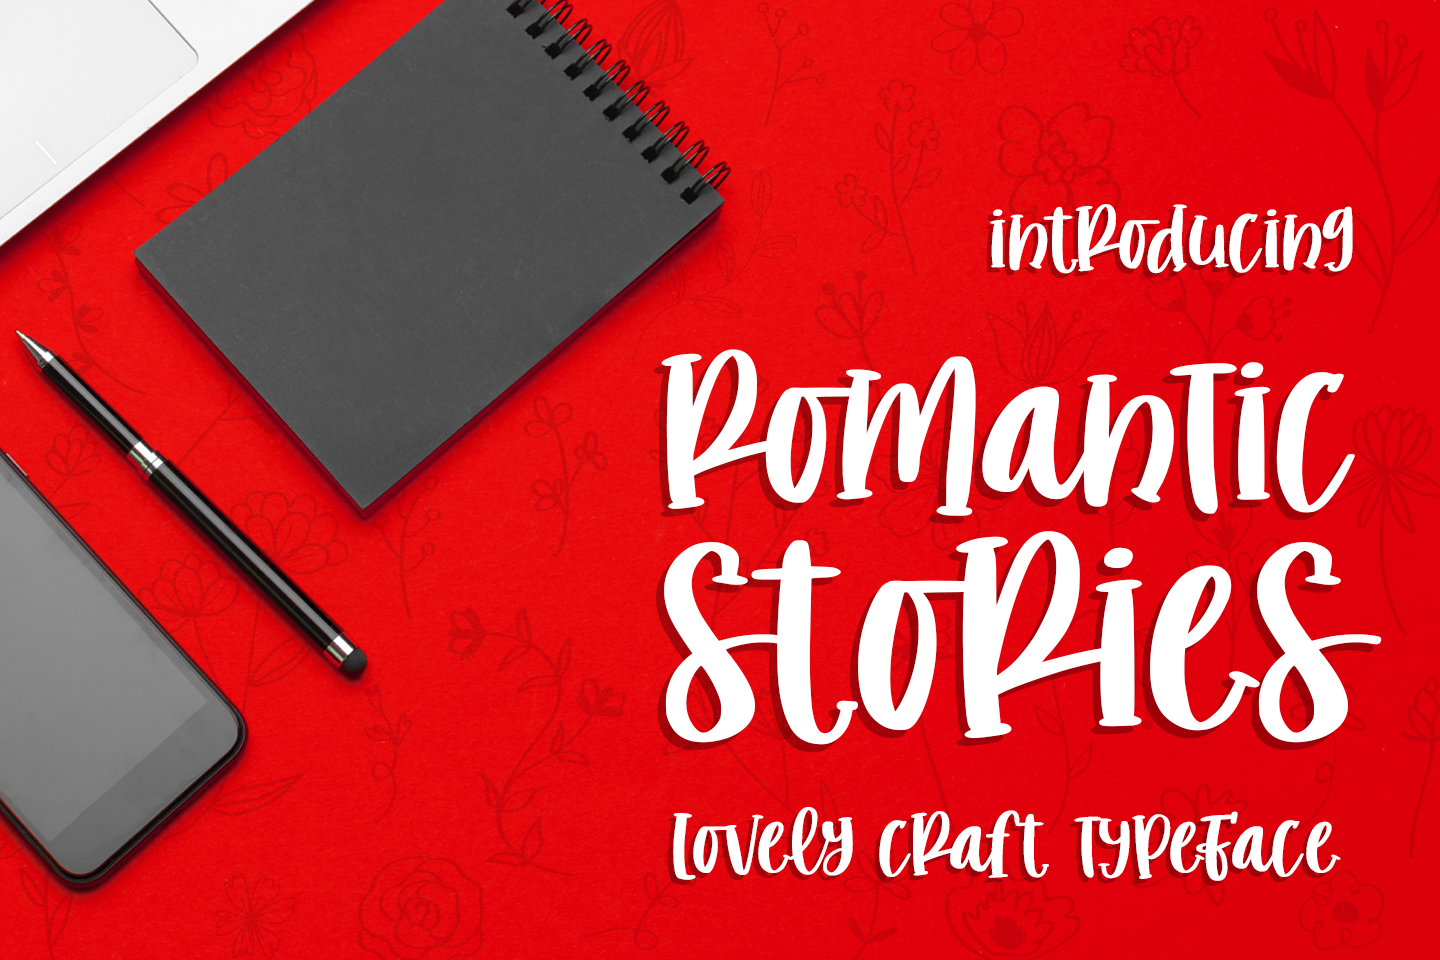 Romantic Stories is a sweet handwritten font. Use it to